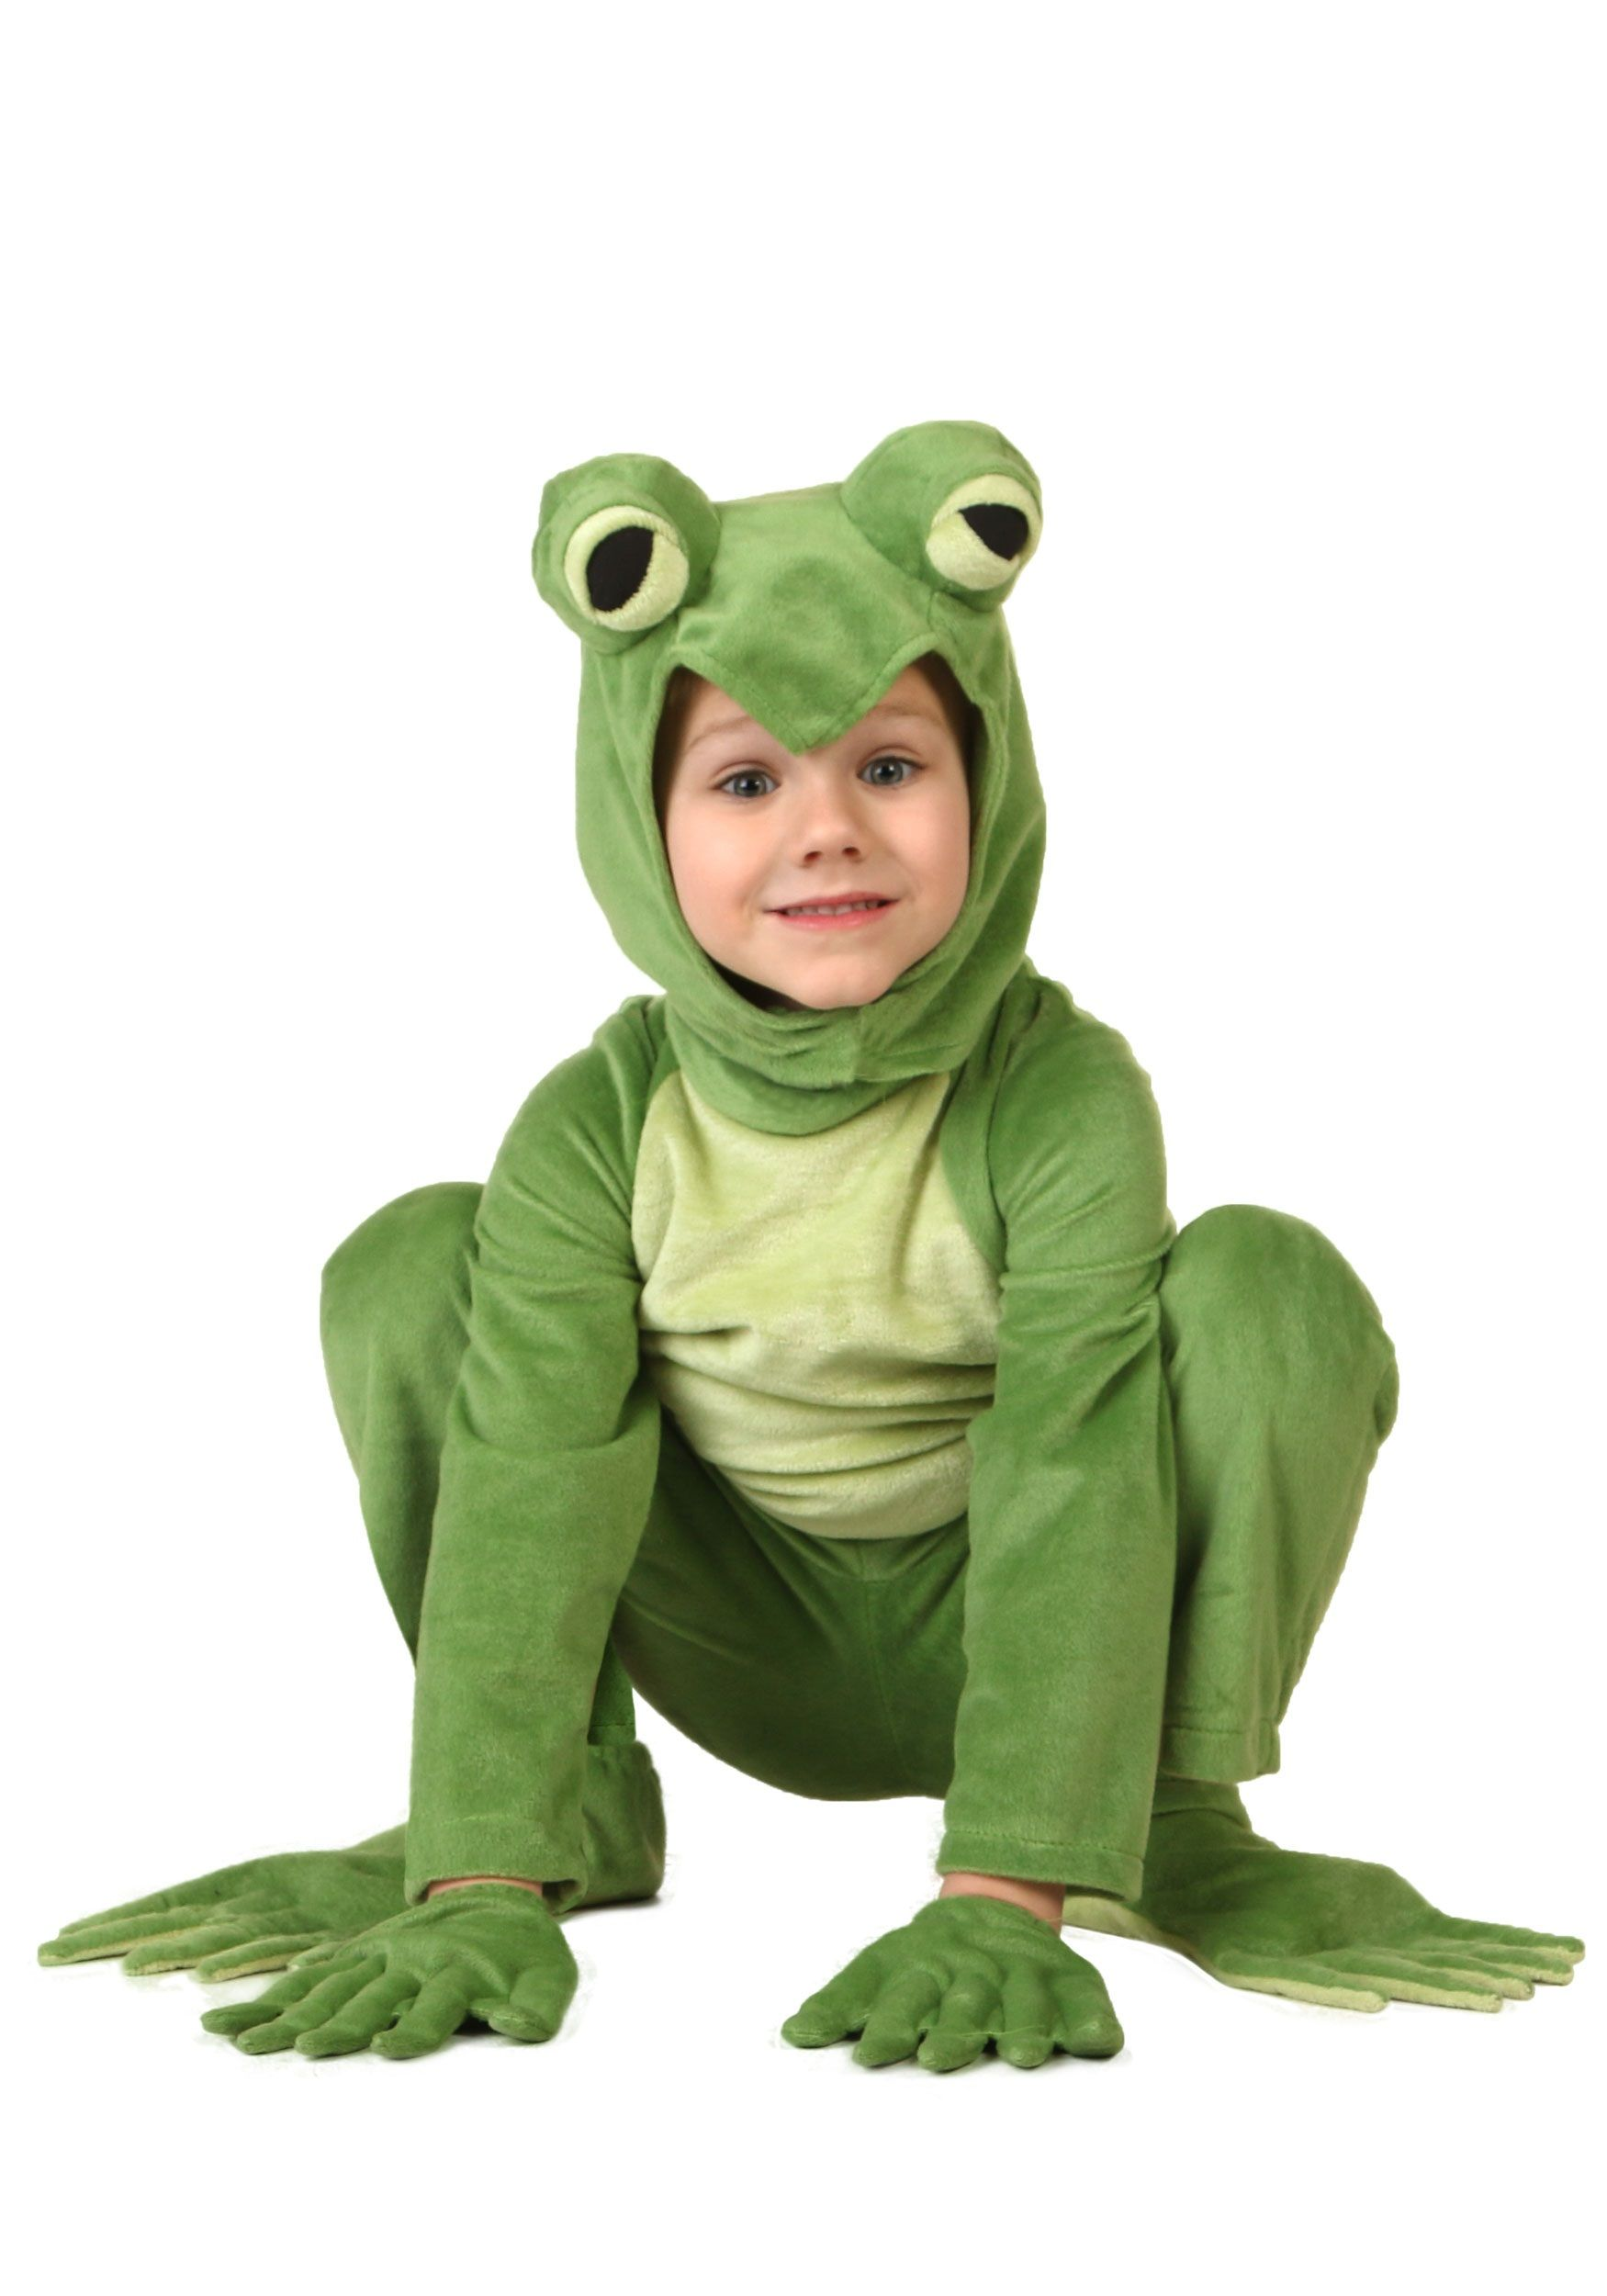 Toddler Deluxe Frog Costume Costumes Stage Theater In 2018 Moeszaffir Rana Lid Accent Hand Bag Dark Green Lizard